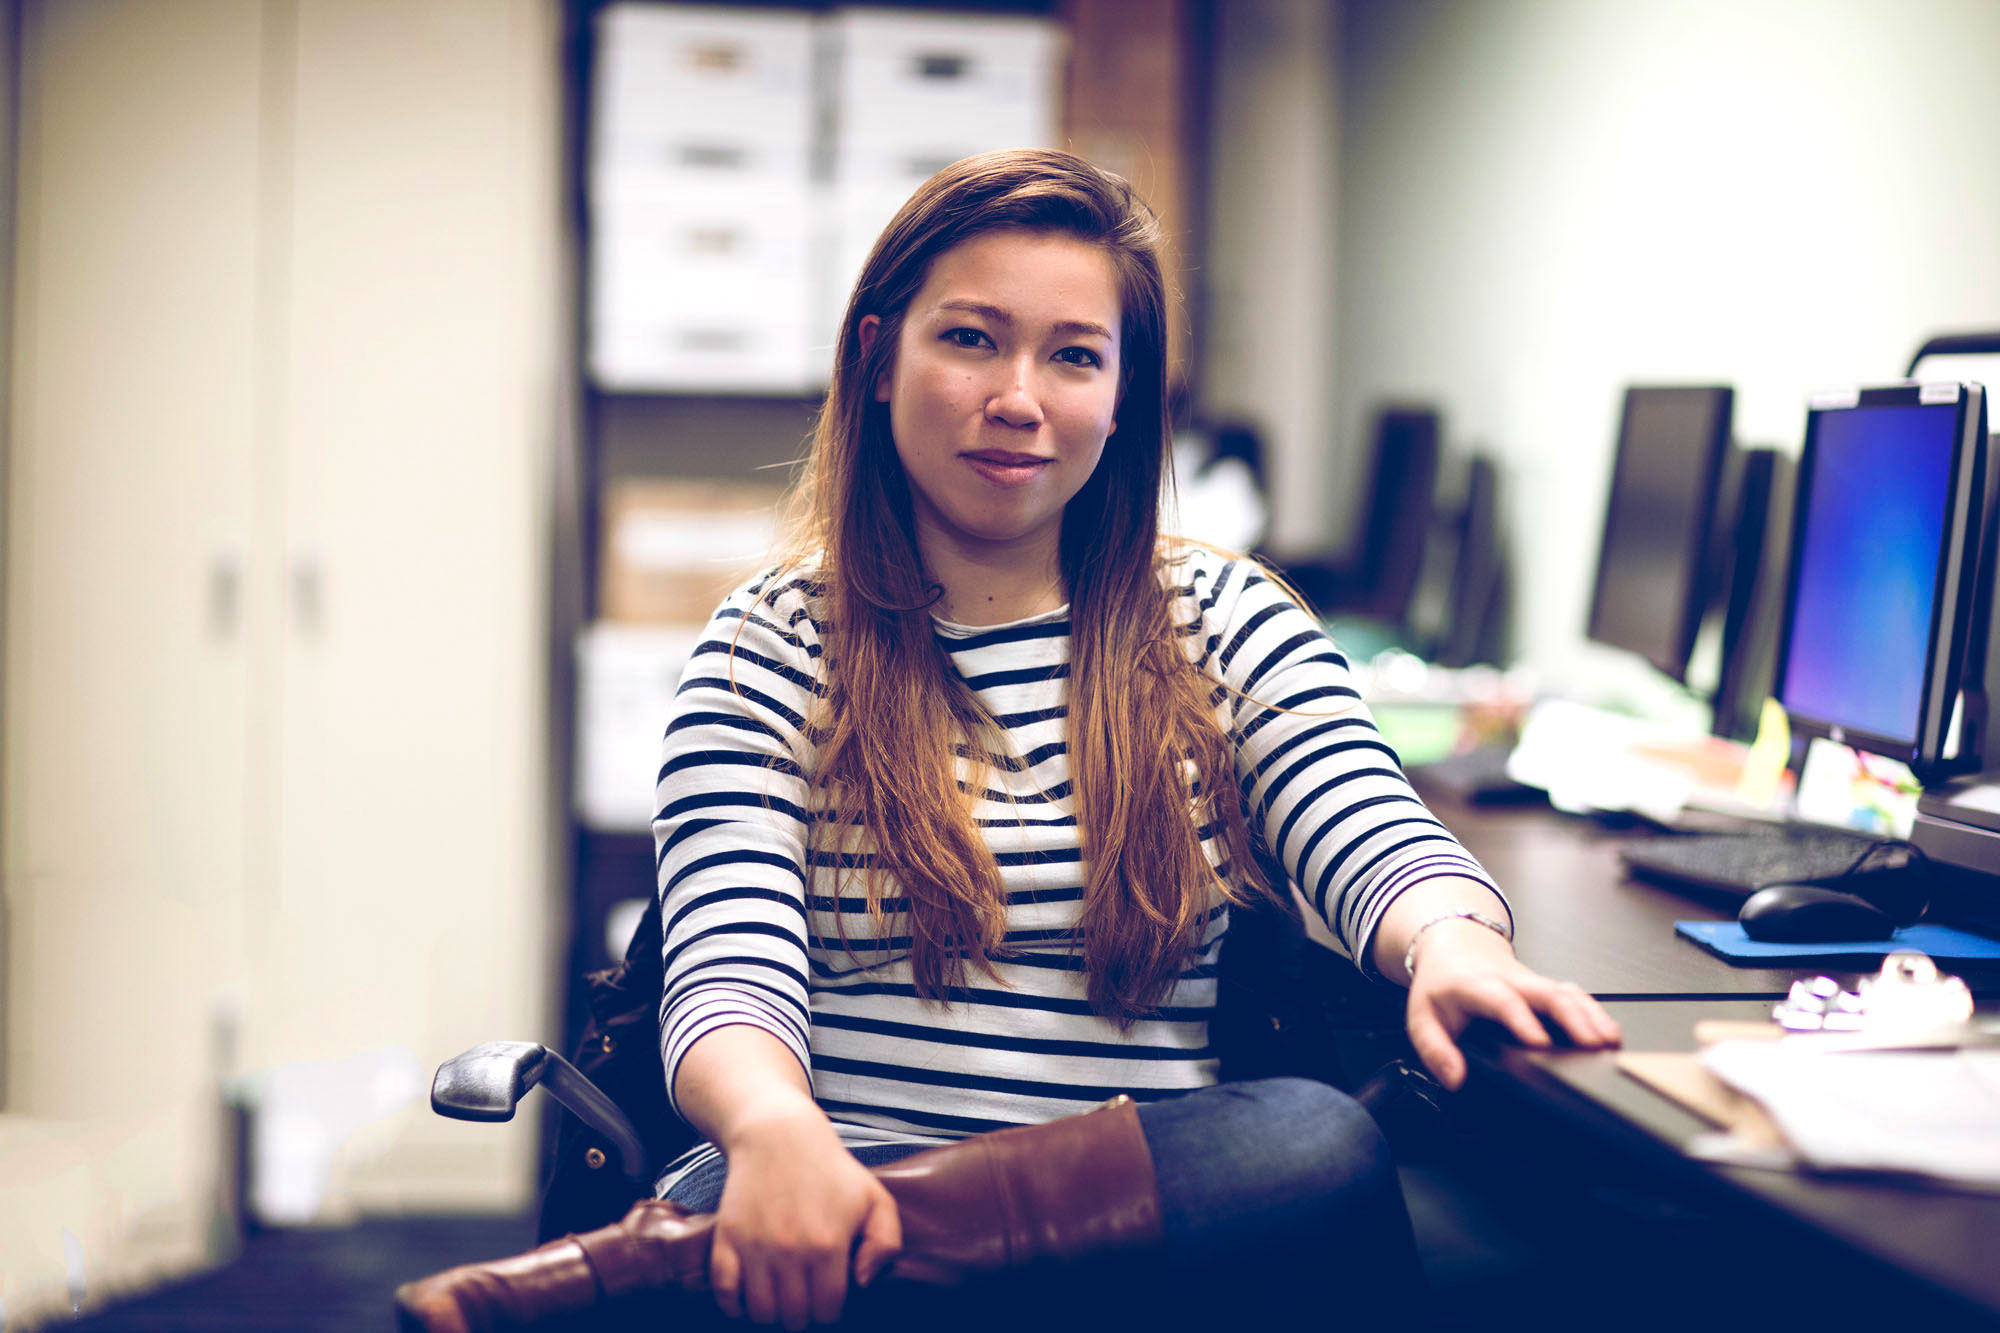 Emma Kyono made the most of her time at UVA by taking an interdisciplinary approach to her academic studies.